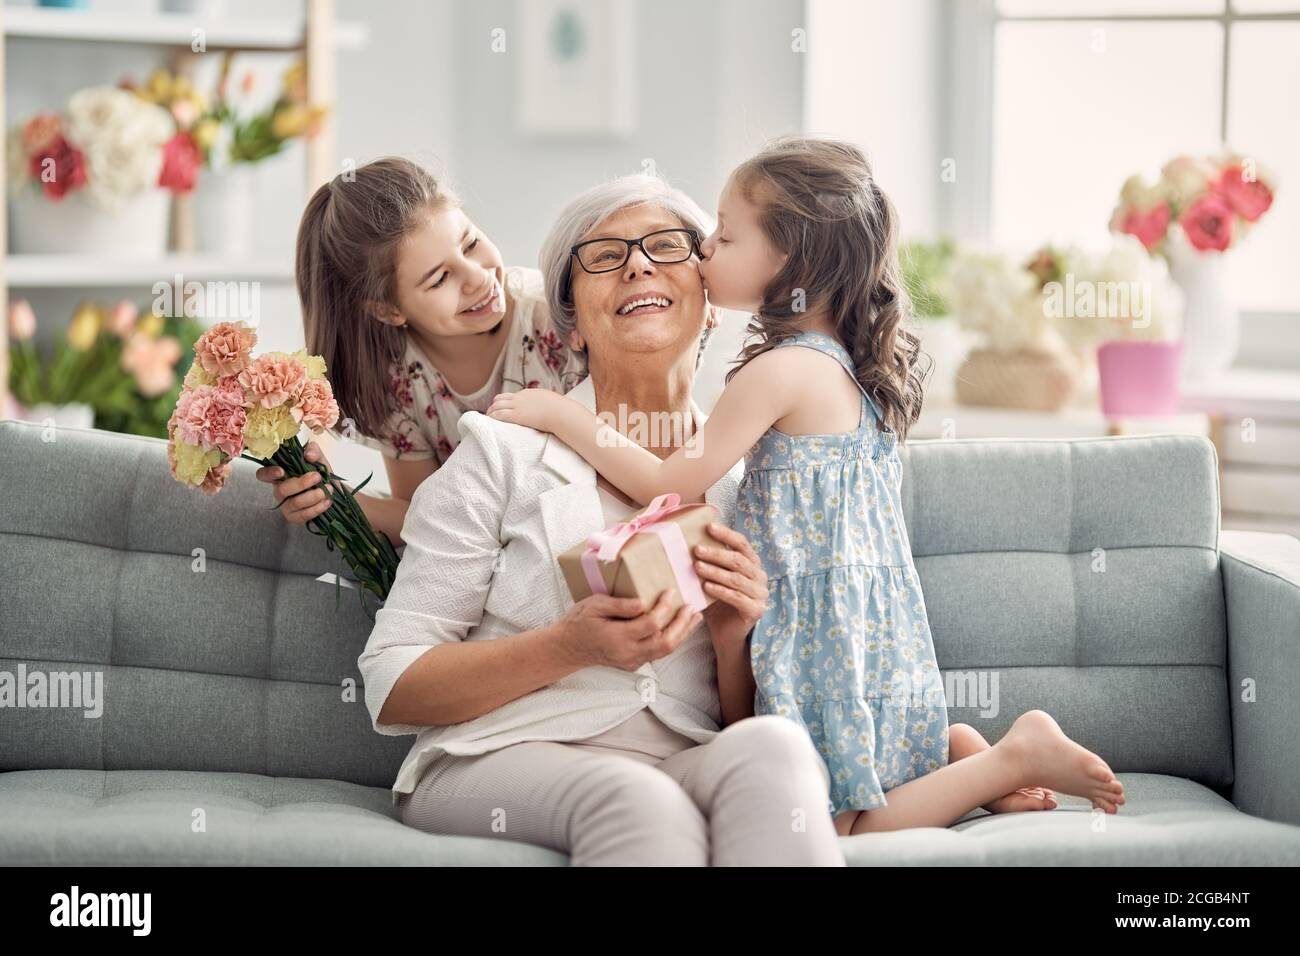 Happy mother's day! Children daughters are congratulating granny giving her flowers and gift. Grandma and girls smiling and hugging. Family holiday an Stock Photo